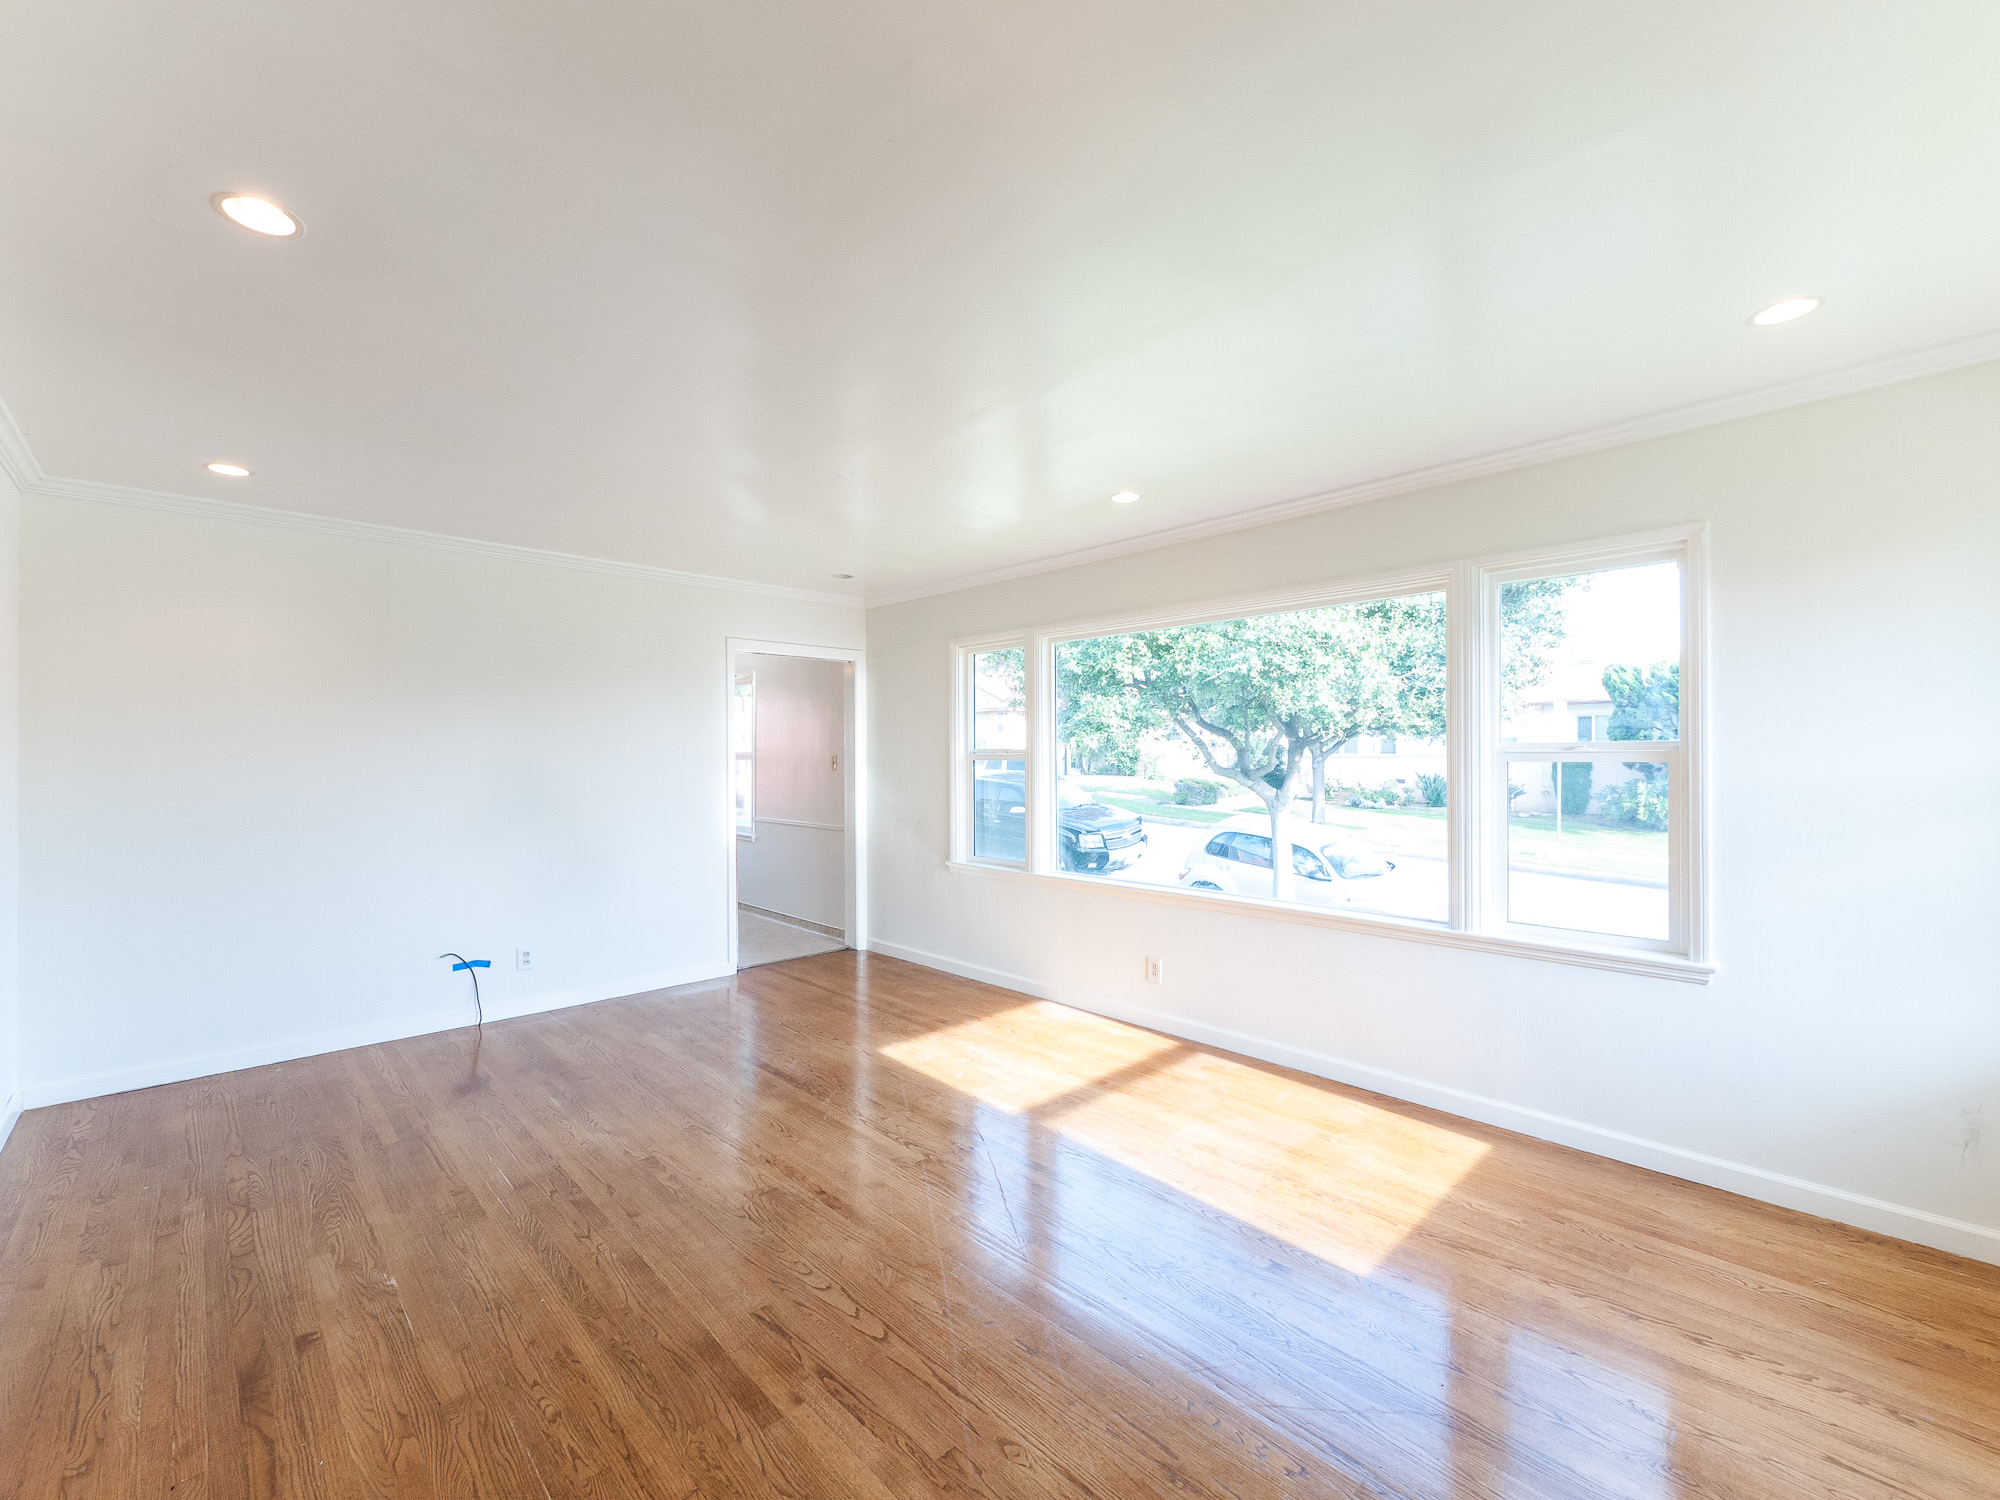 Welcome Home! Renovated  Mid-Century, Spacious 2 Bed/2 Bath- Laundry Hookups - 2 Car Garage